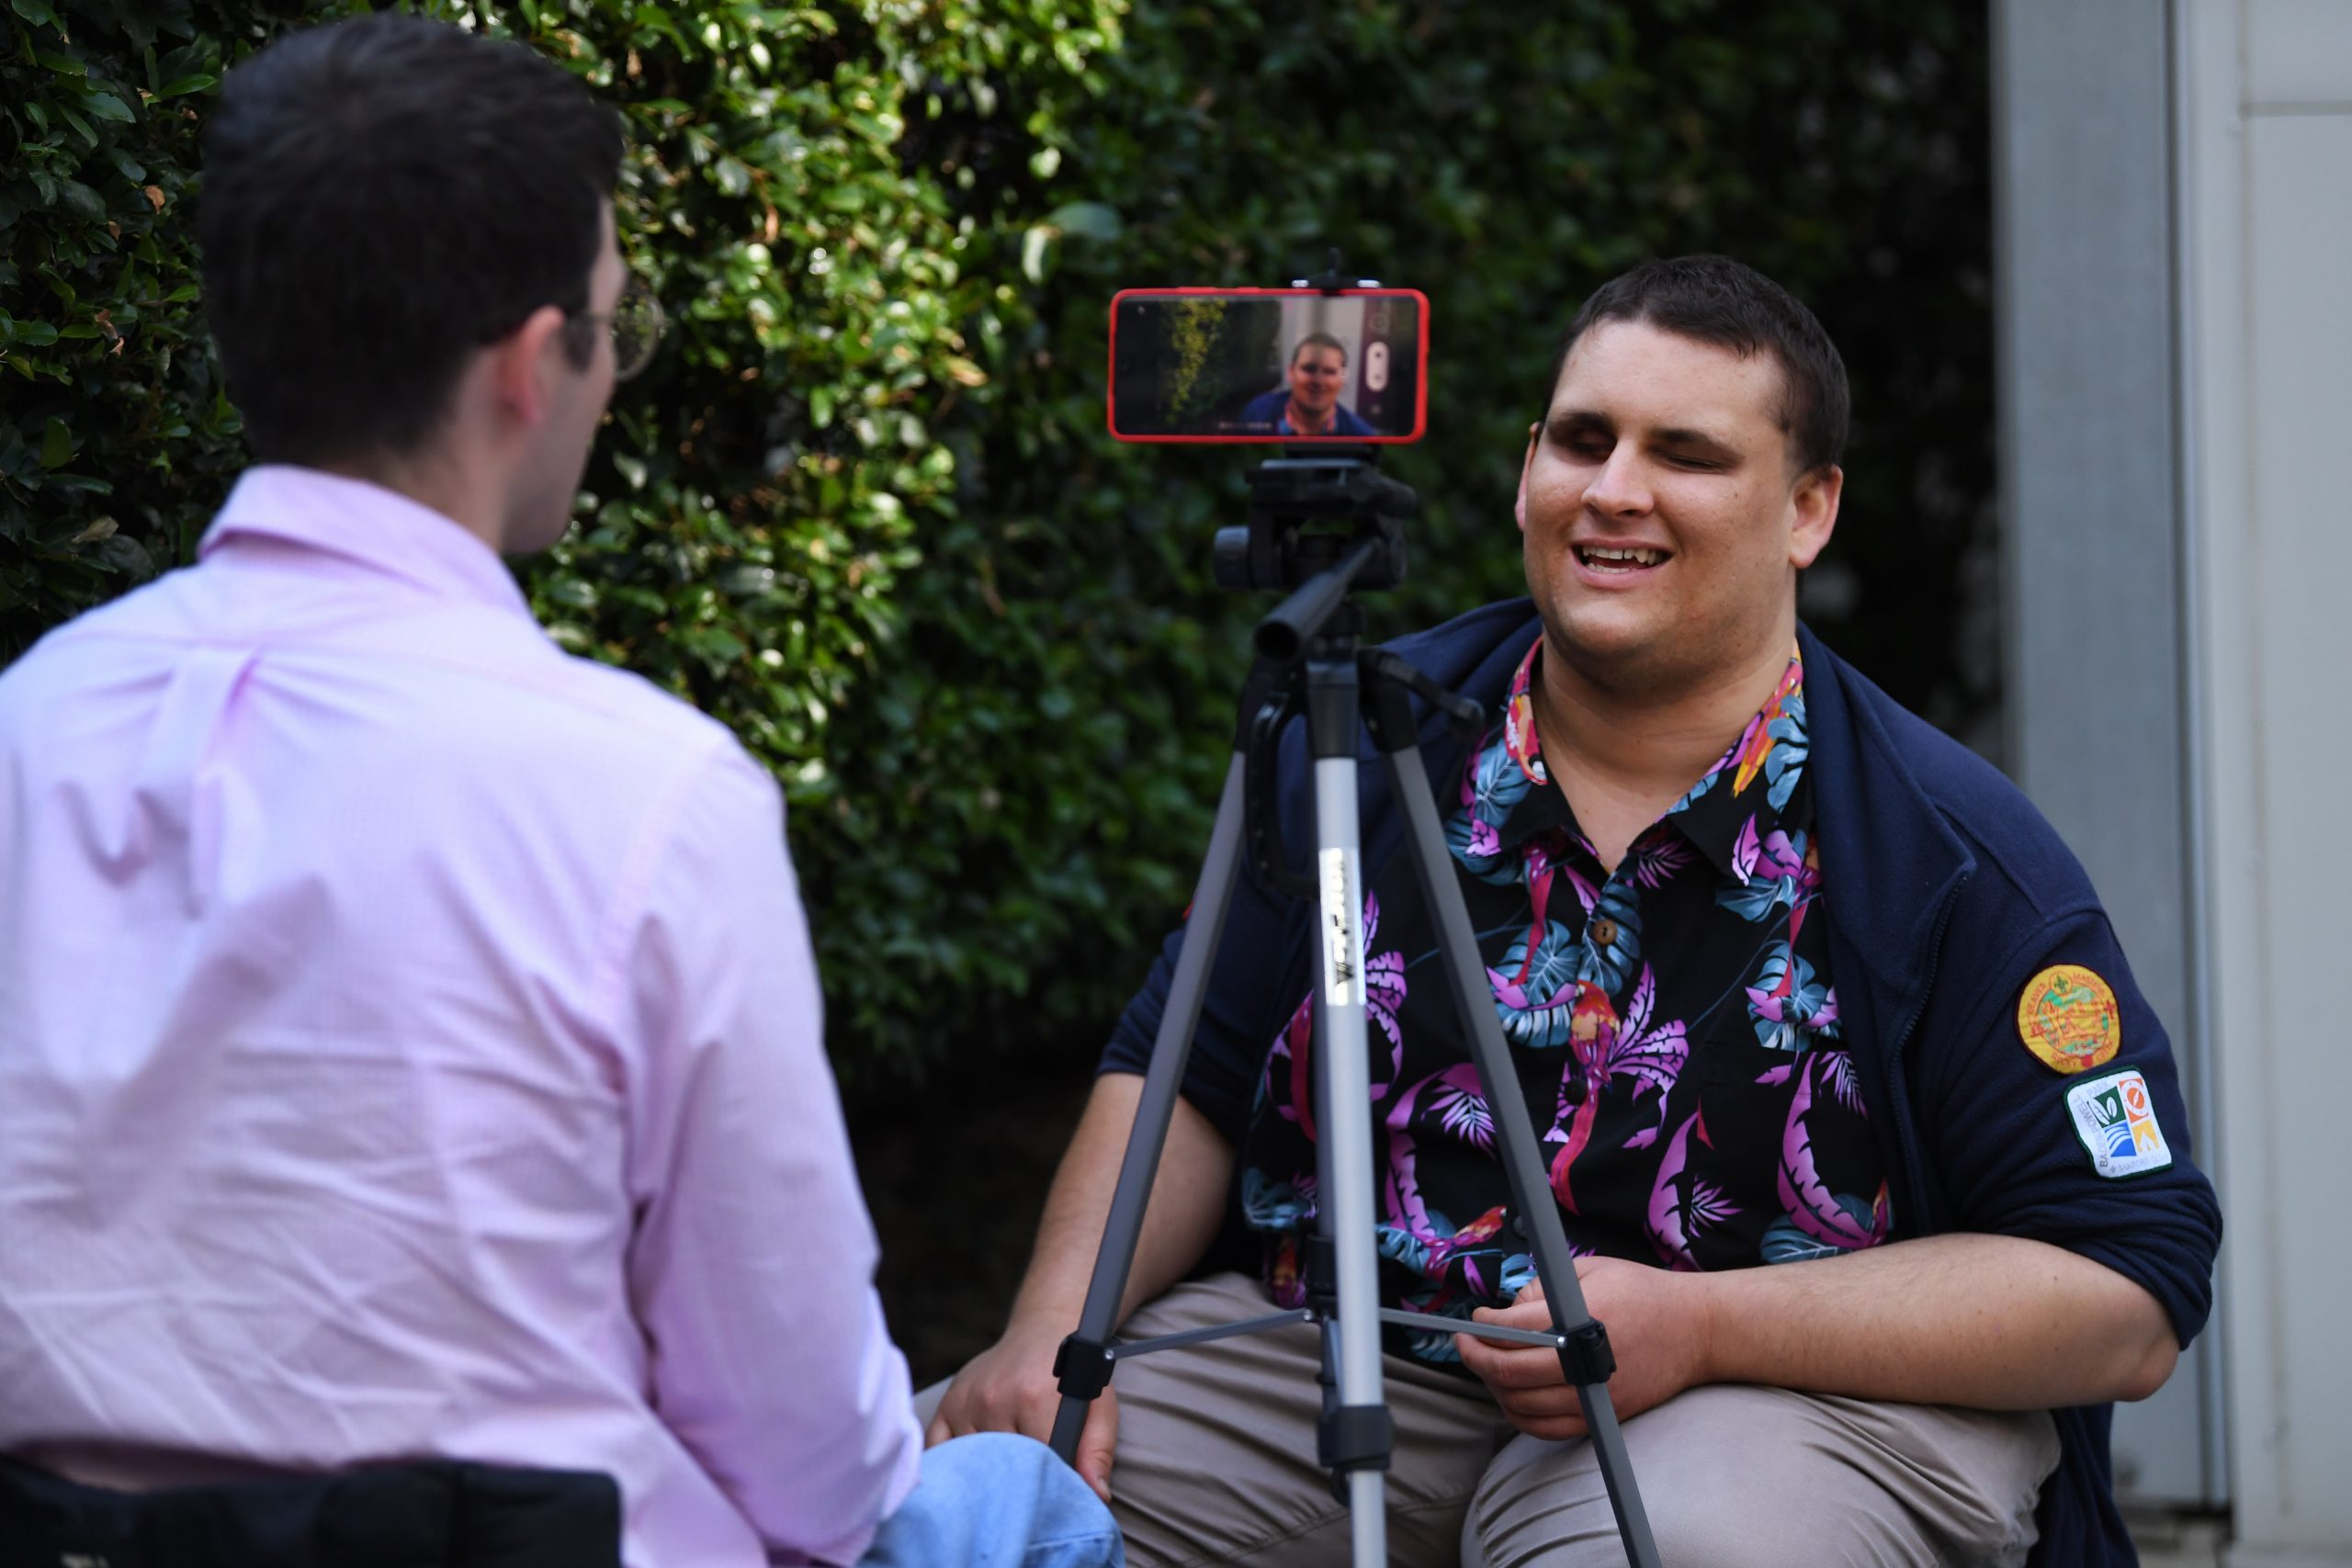 A man being interviewed and recorded on an iphone which is set up on a tripod.